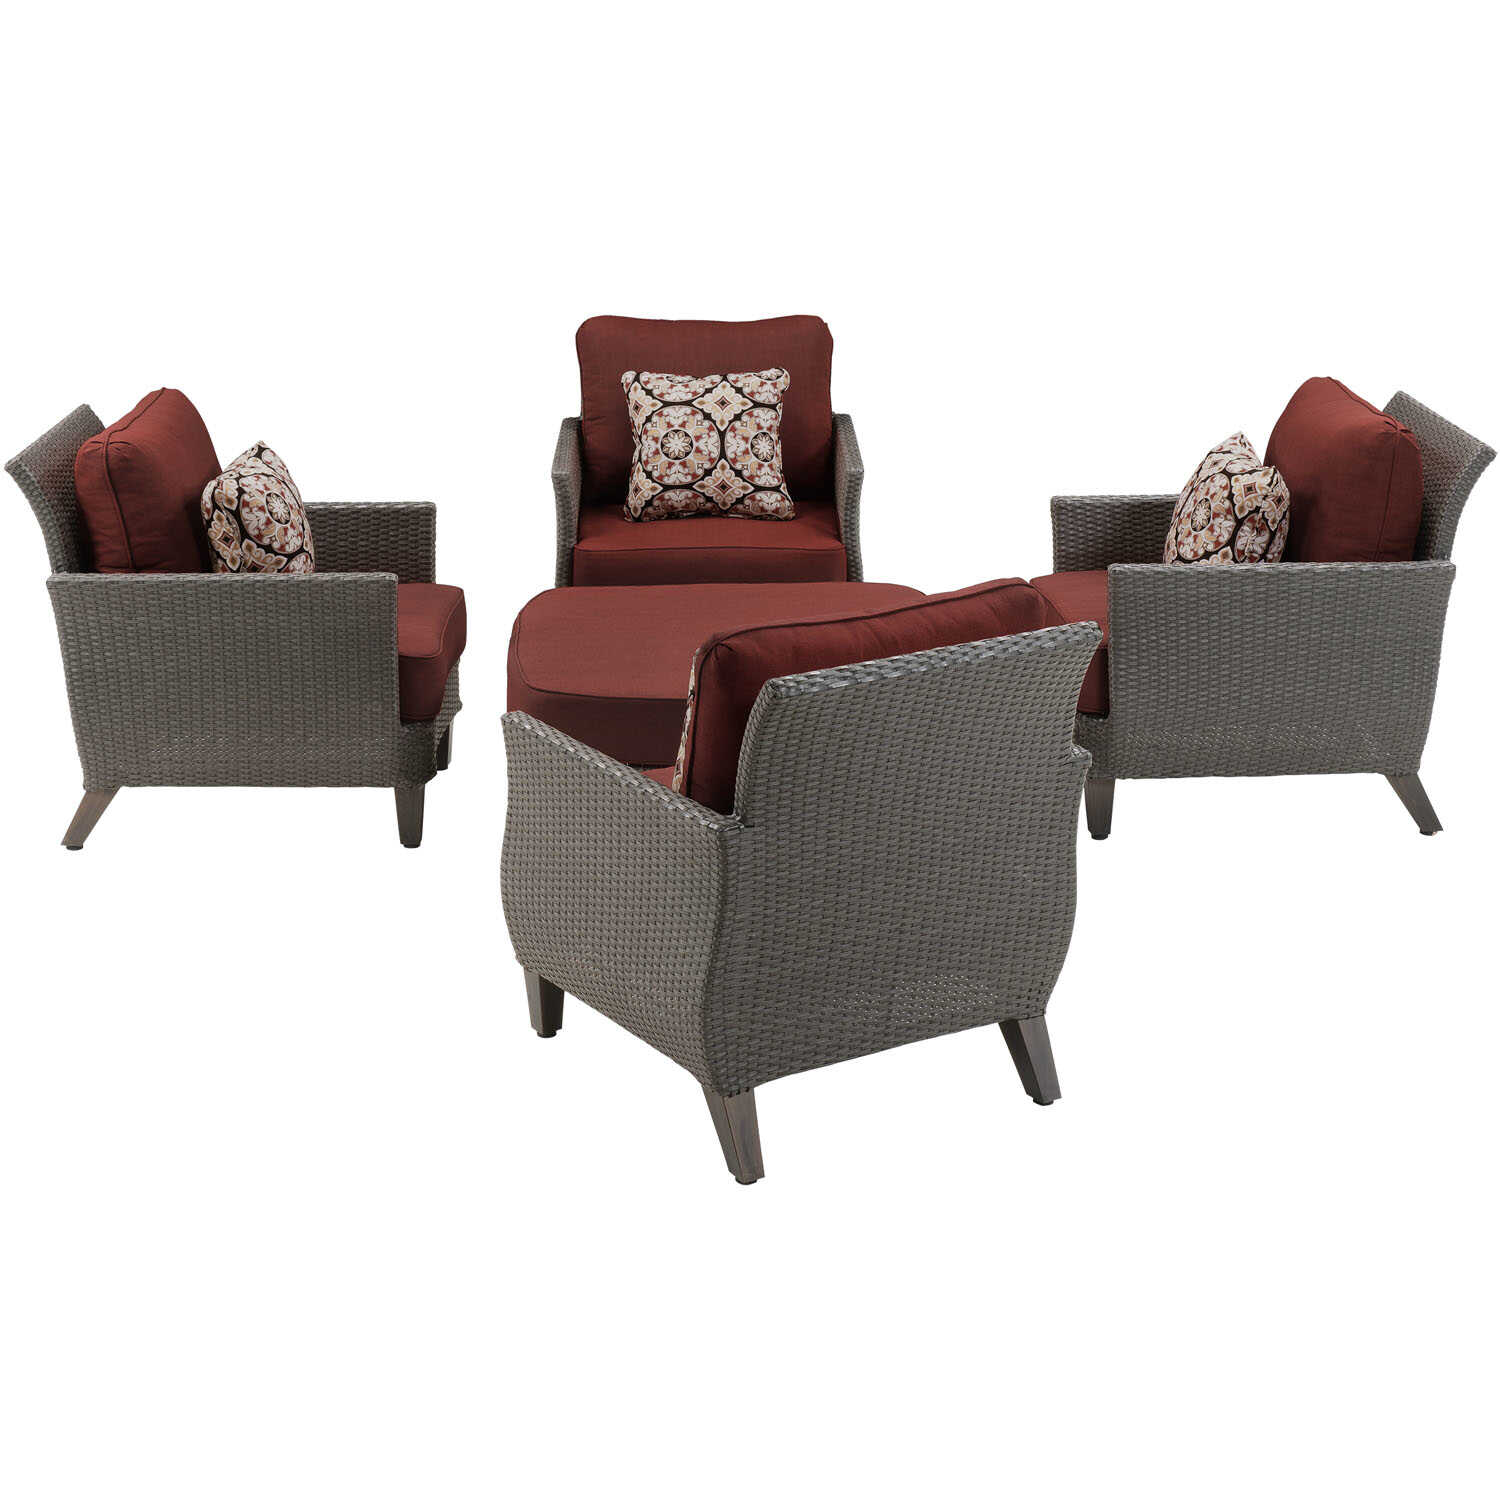 Hanover  Savannah  5 pc. Gray  Chat Set  Red